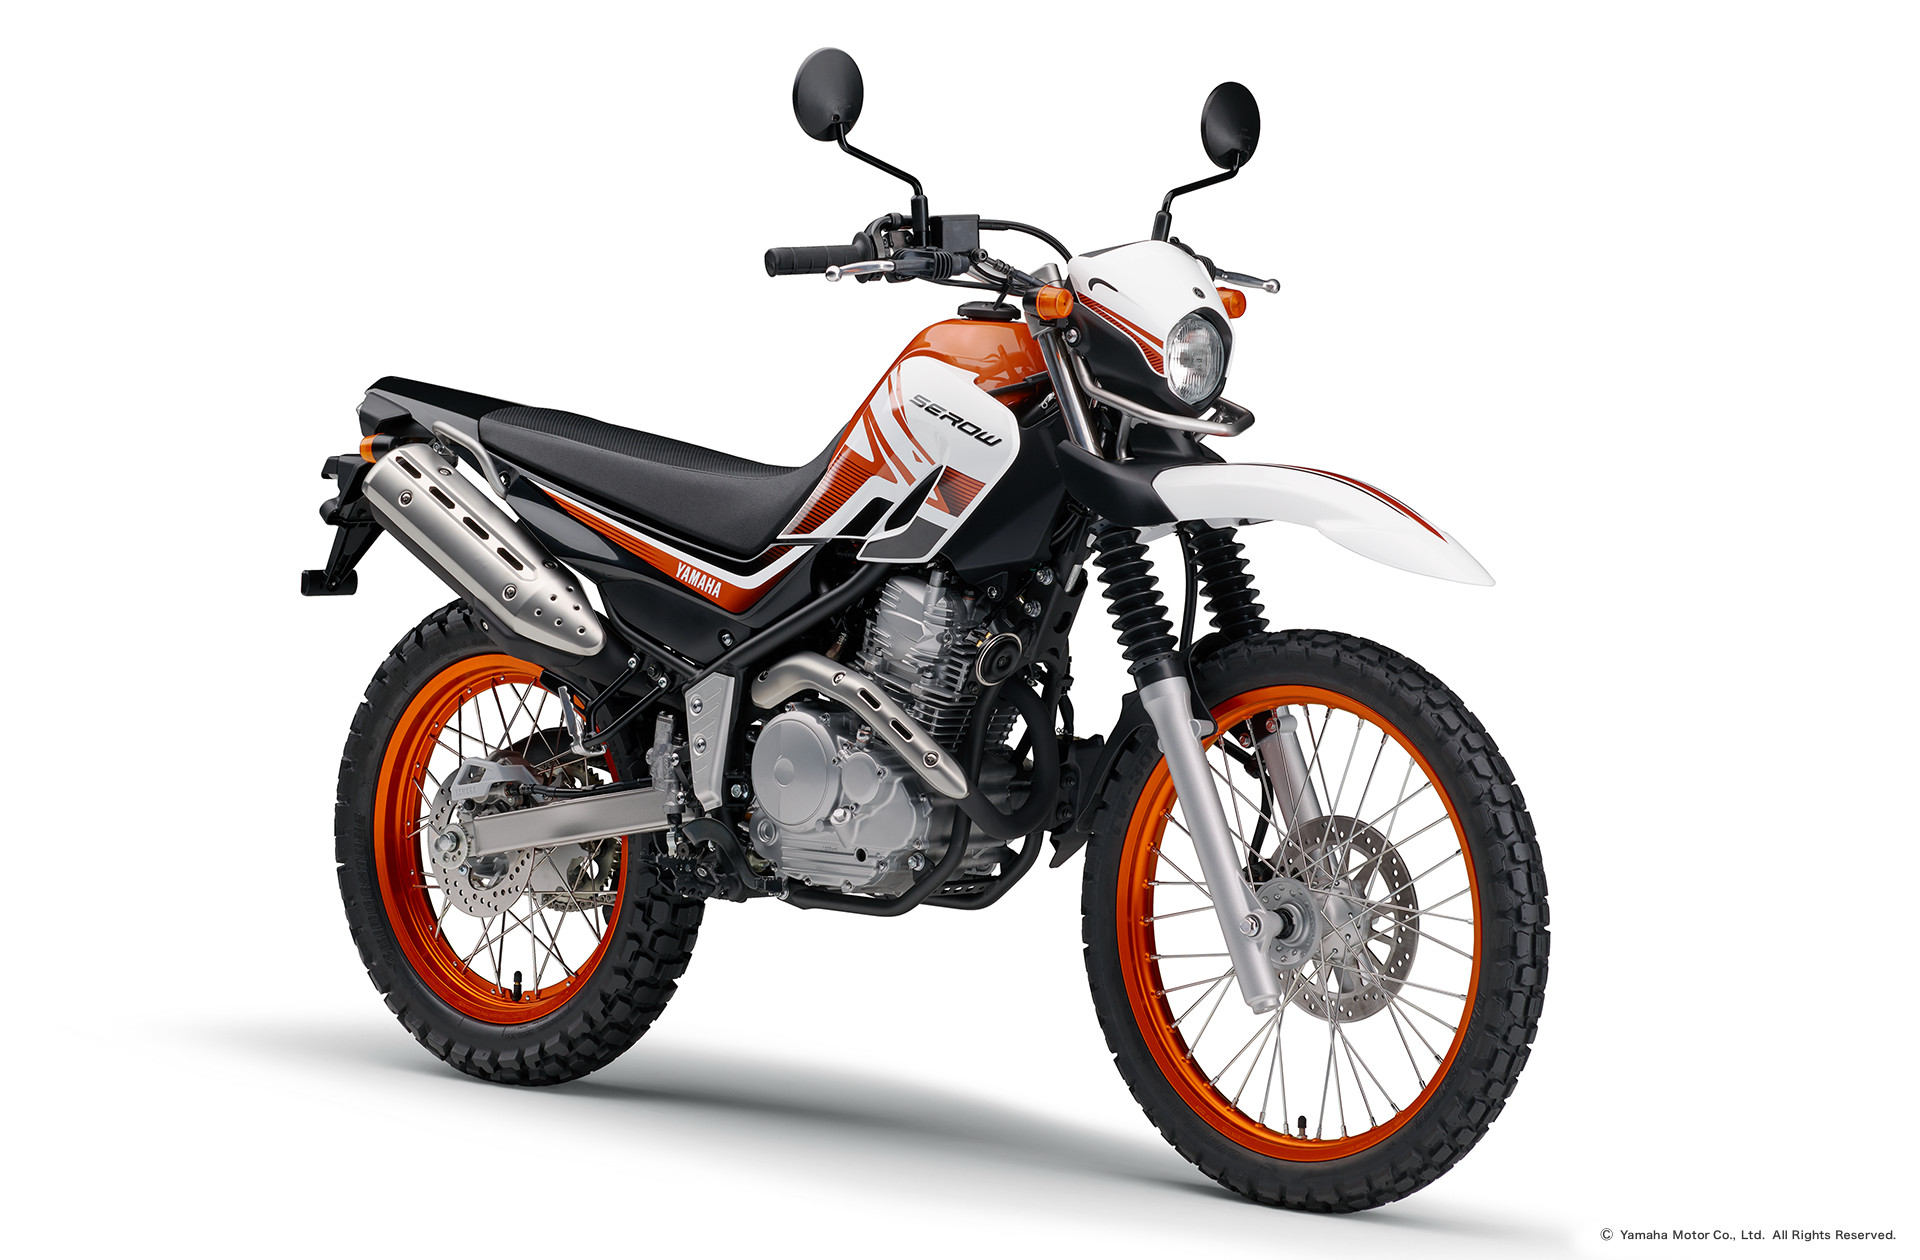 2018 SCROW (3).jpg - ((( 林店長 ))) YAMAHA 2018 SCROW 羚羊 250 洽09-28230438